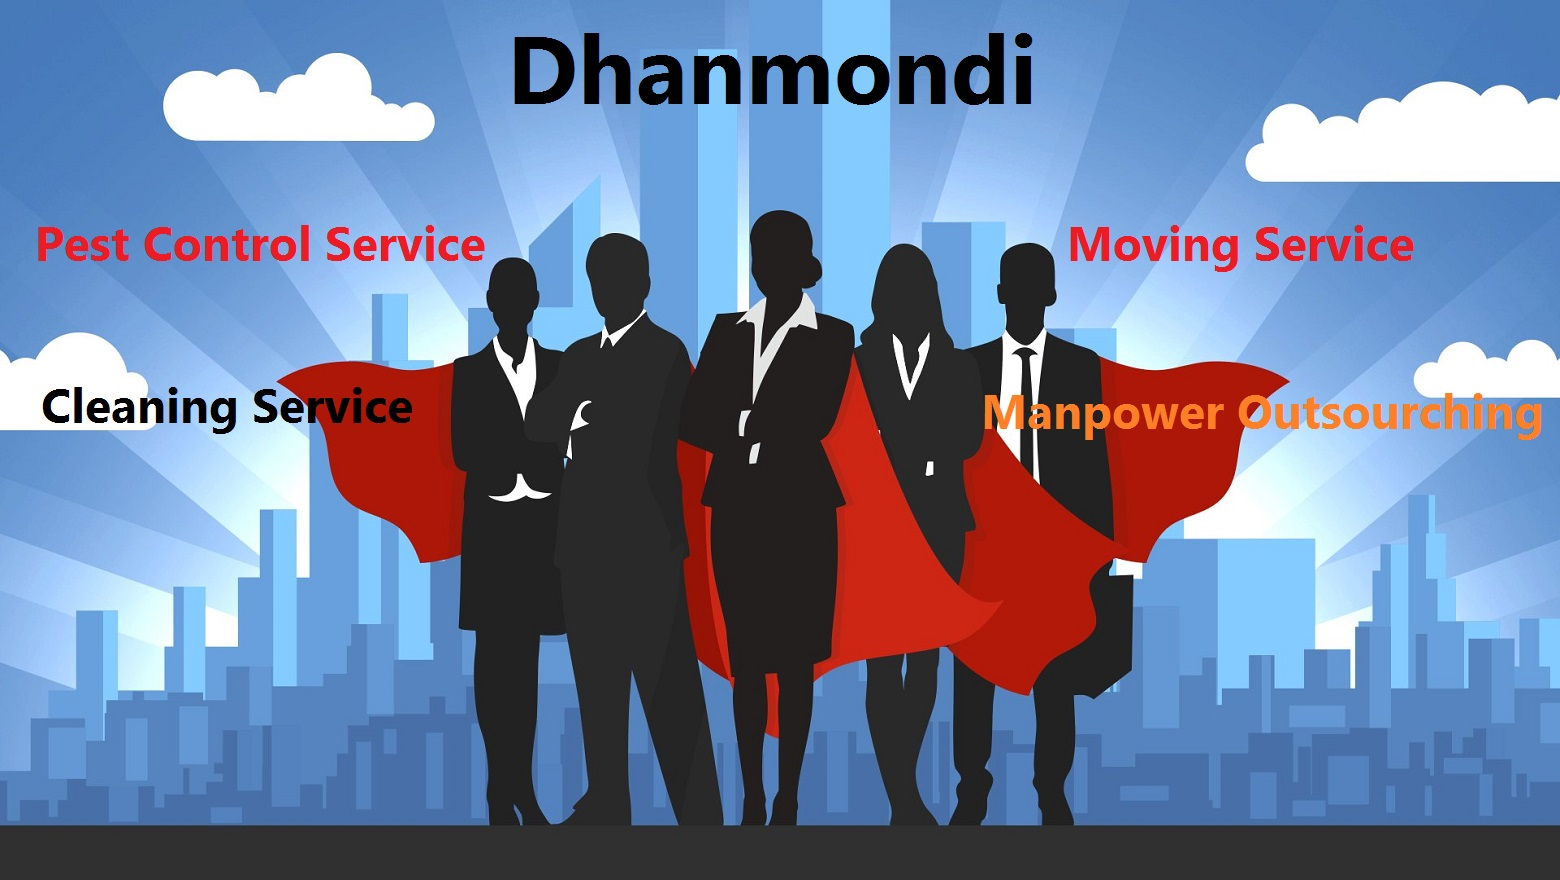 pest control services in dhanmondi